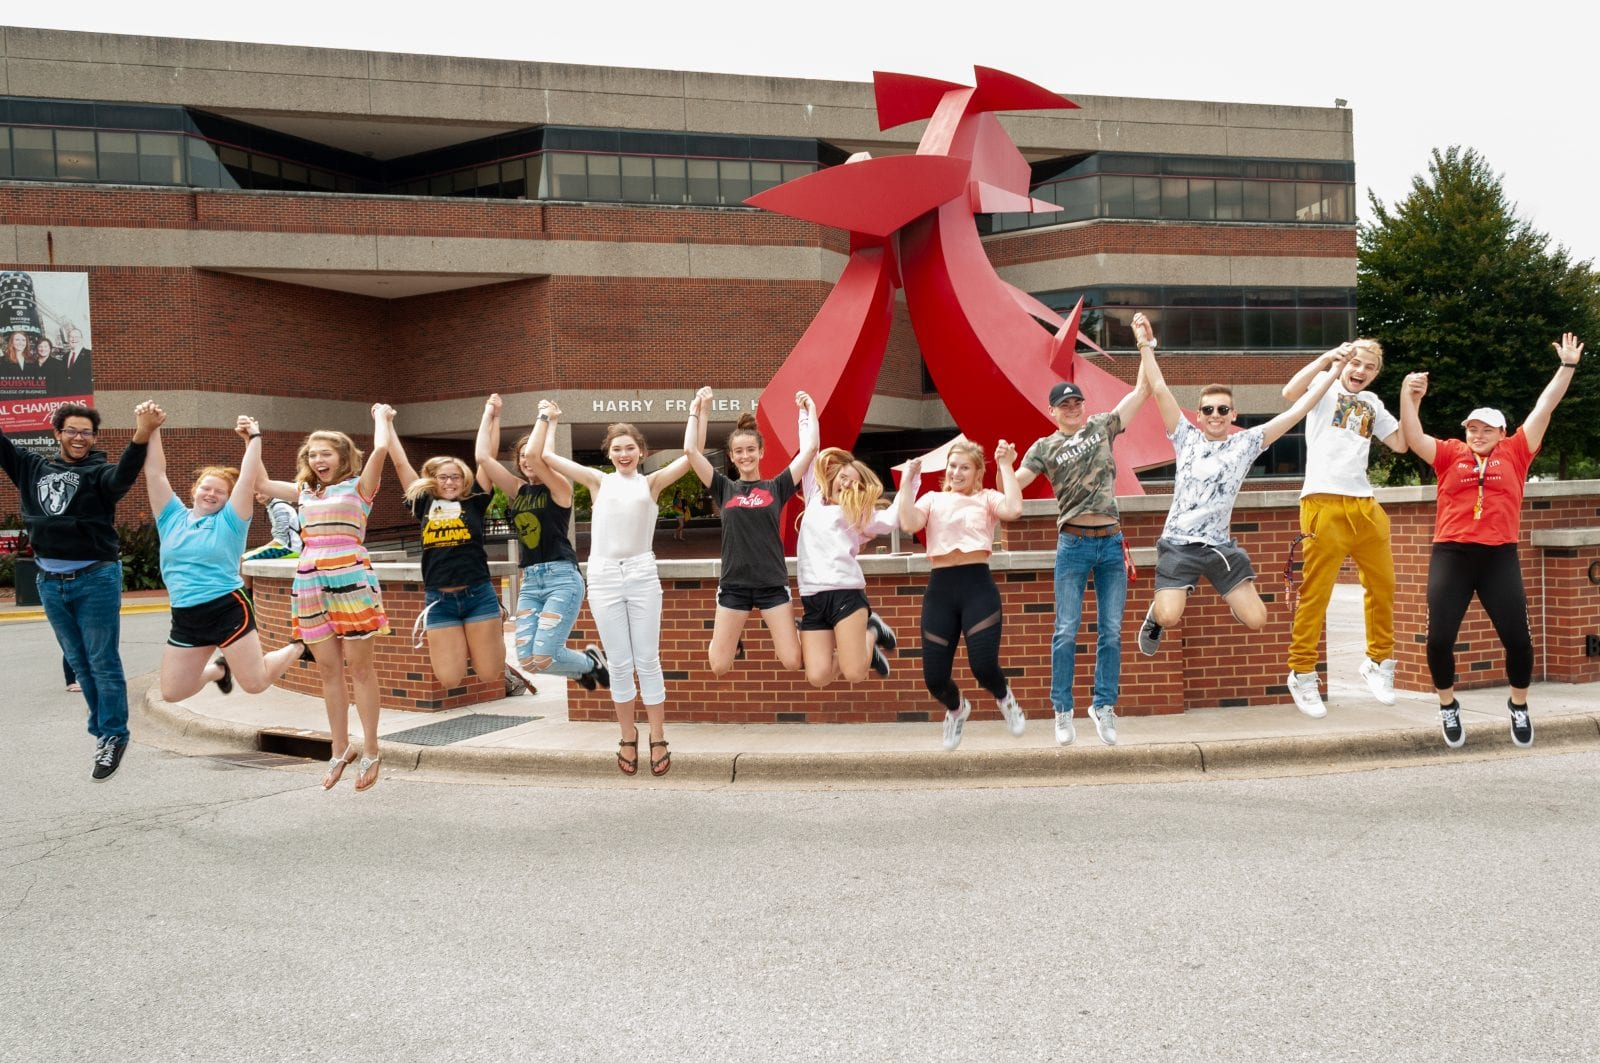 in action shot of students jumping and holding hands in front of sculpture